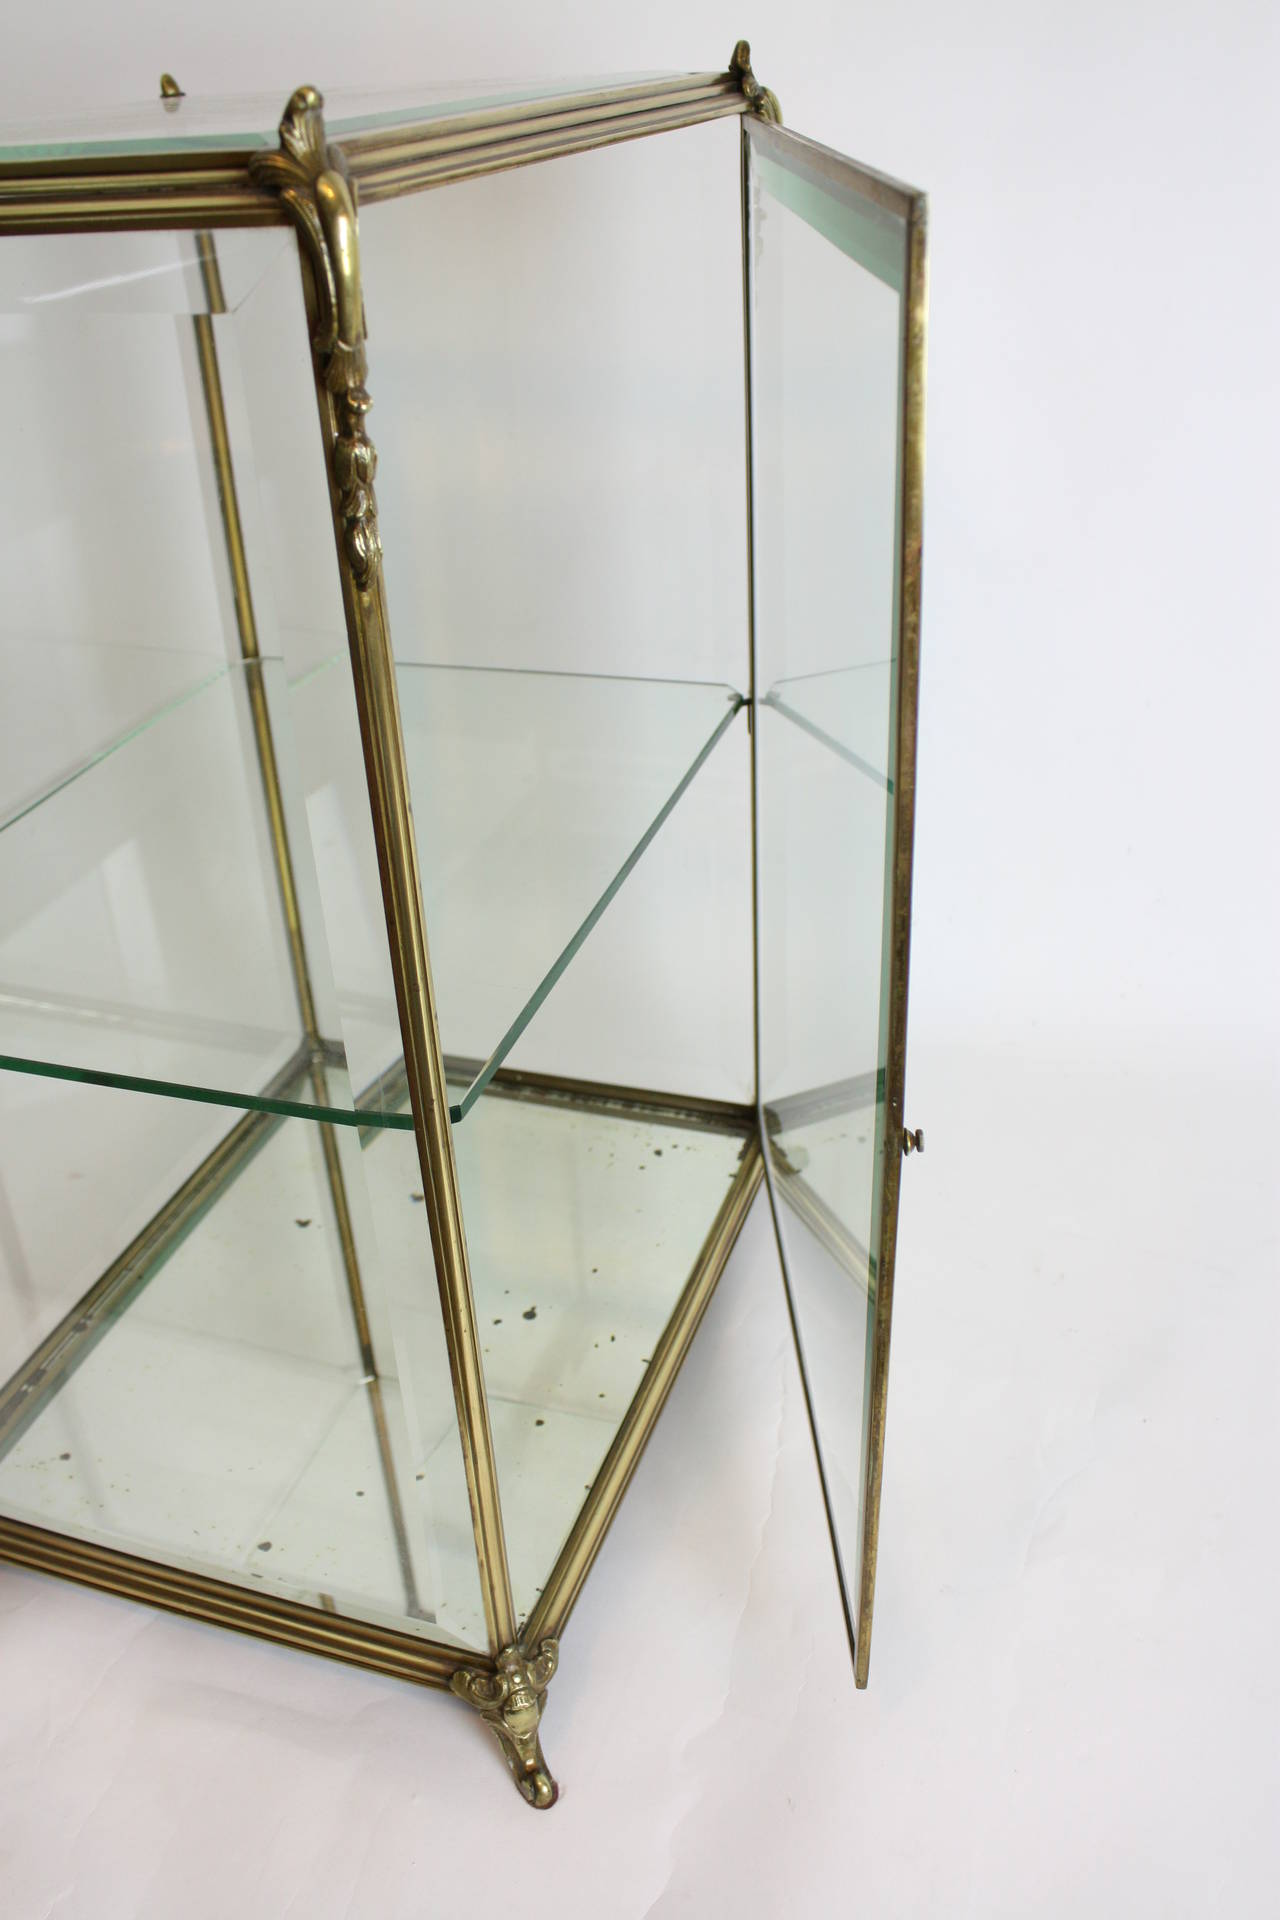 Louis XV Style Bronze and Beveled Glass Jewelry or Cakes Showcase / Vitrine For Sale 3